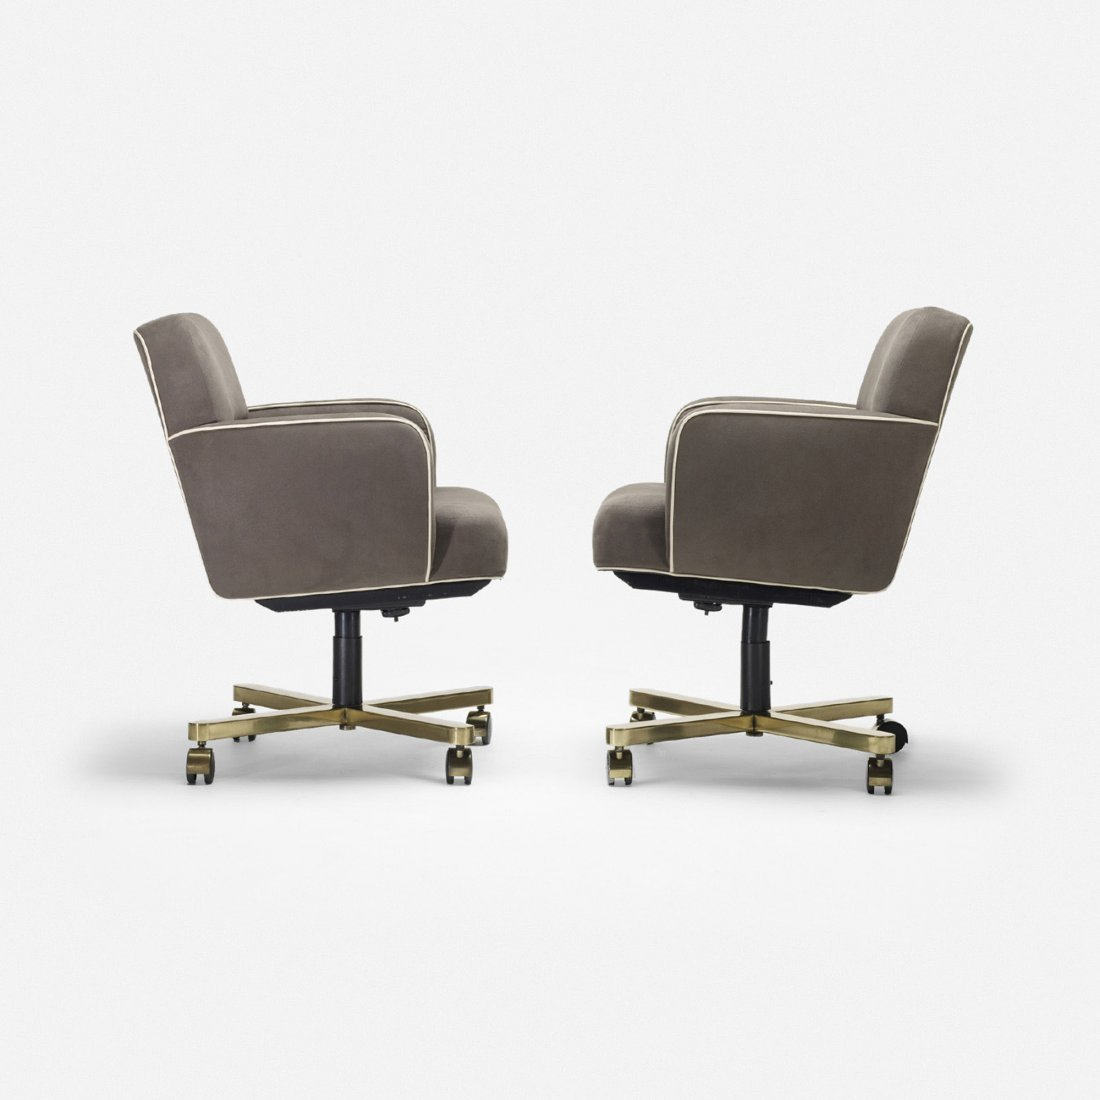 110: American office chairs, pair